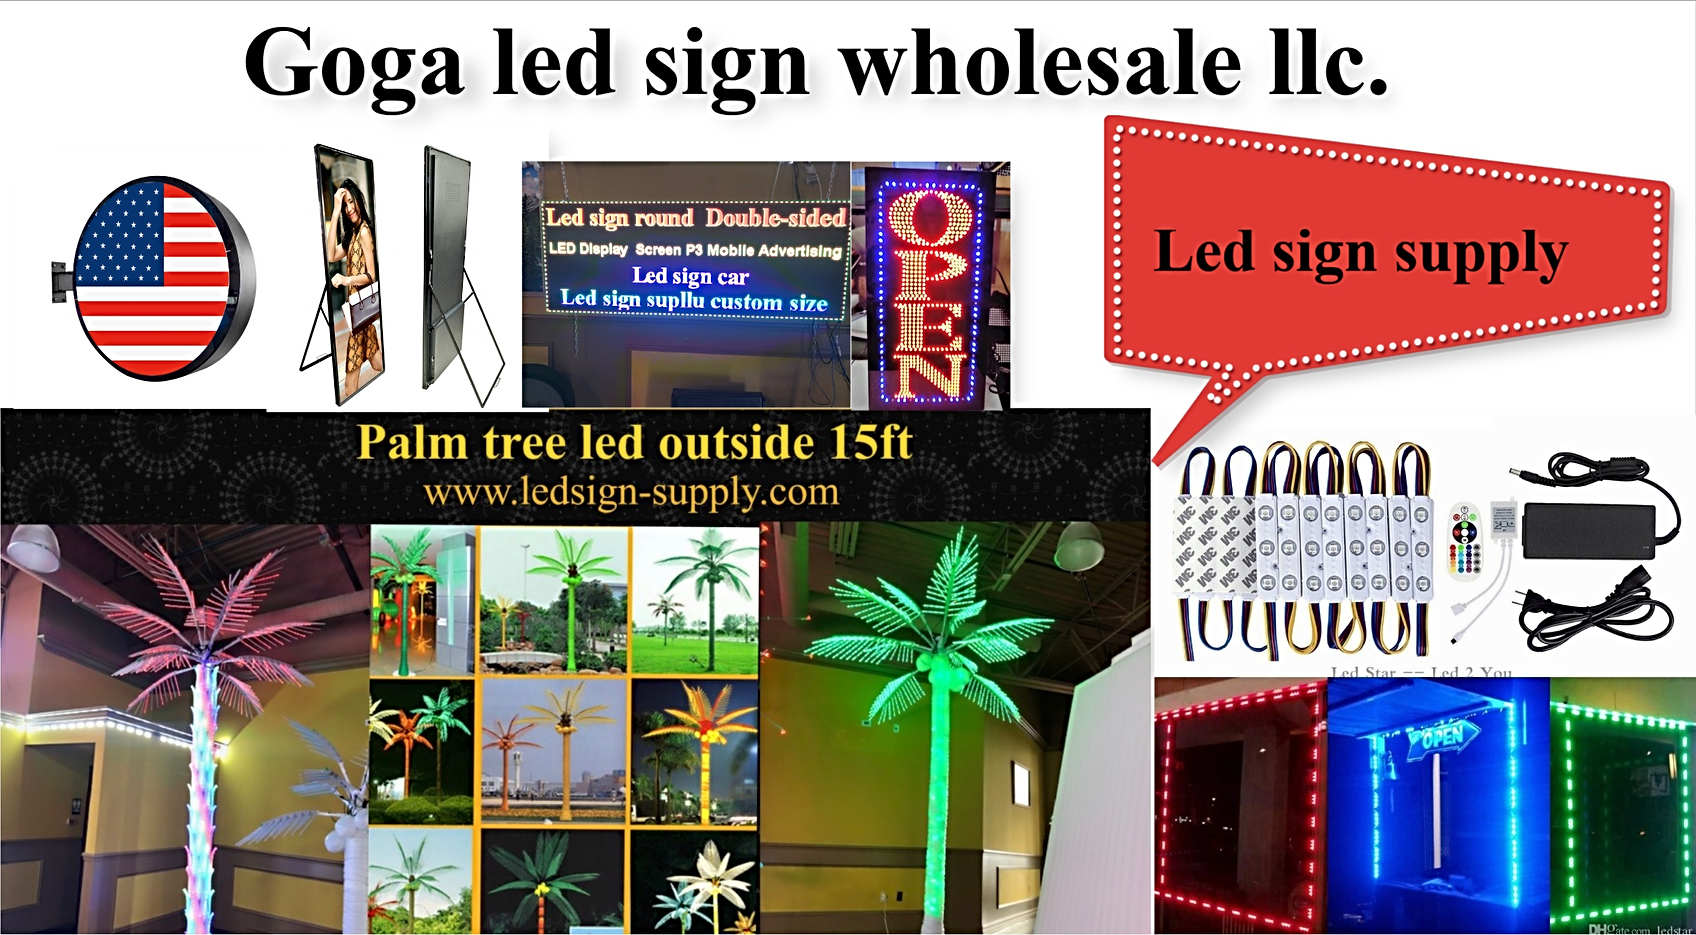 Led sign supply & trees led